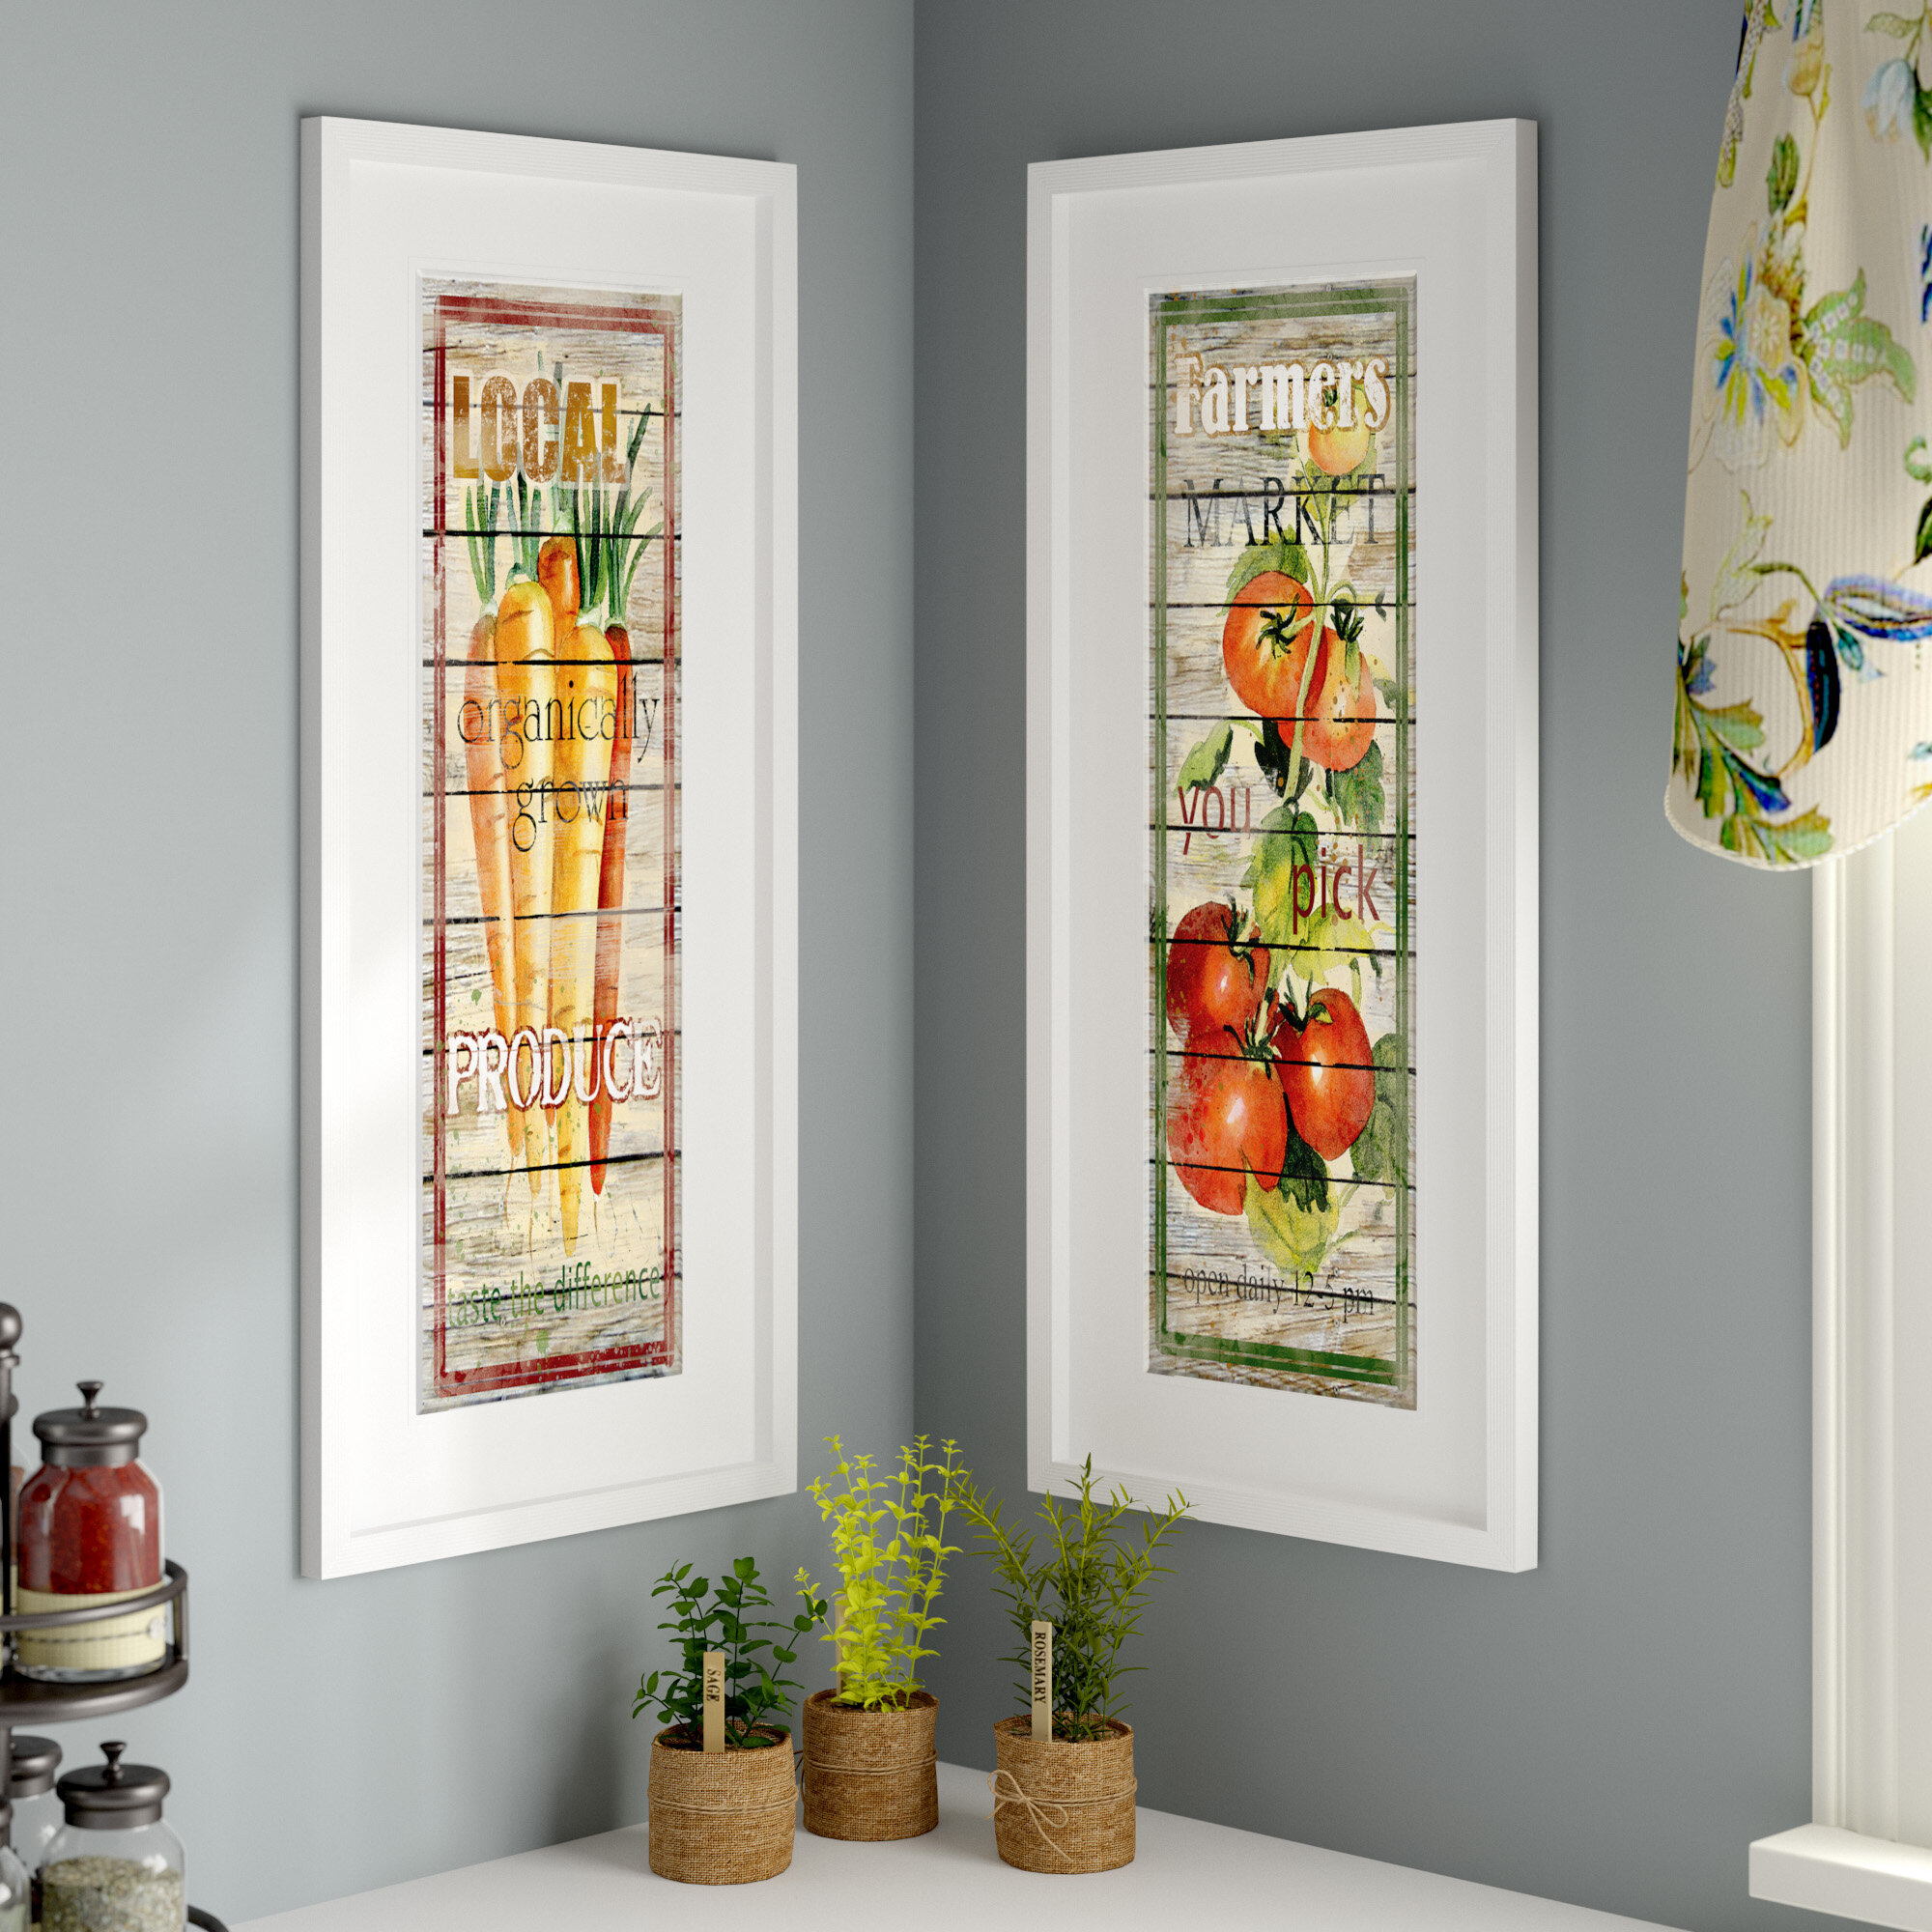 Kitchen Dining Wall Art You Ll Love In 2021